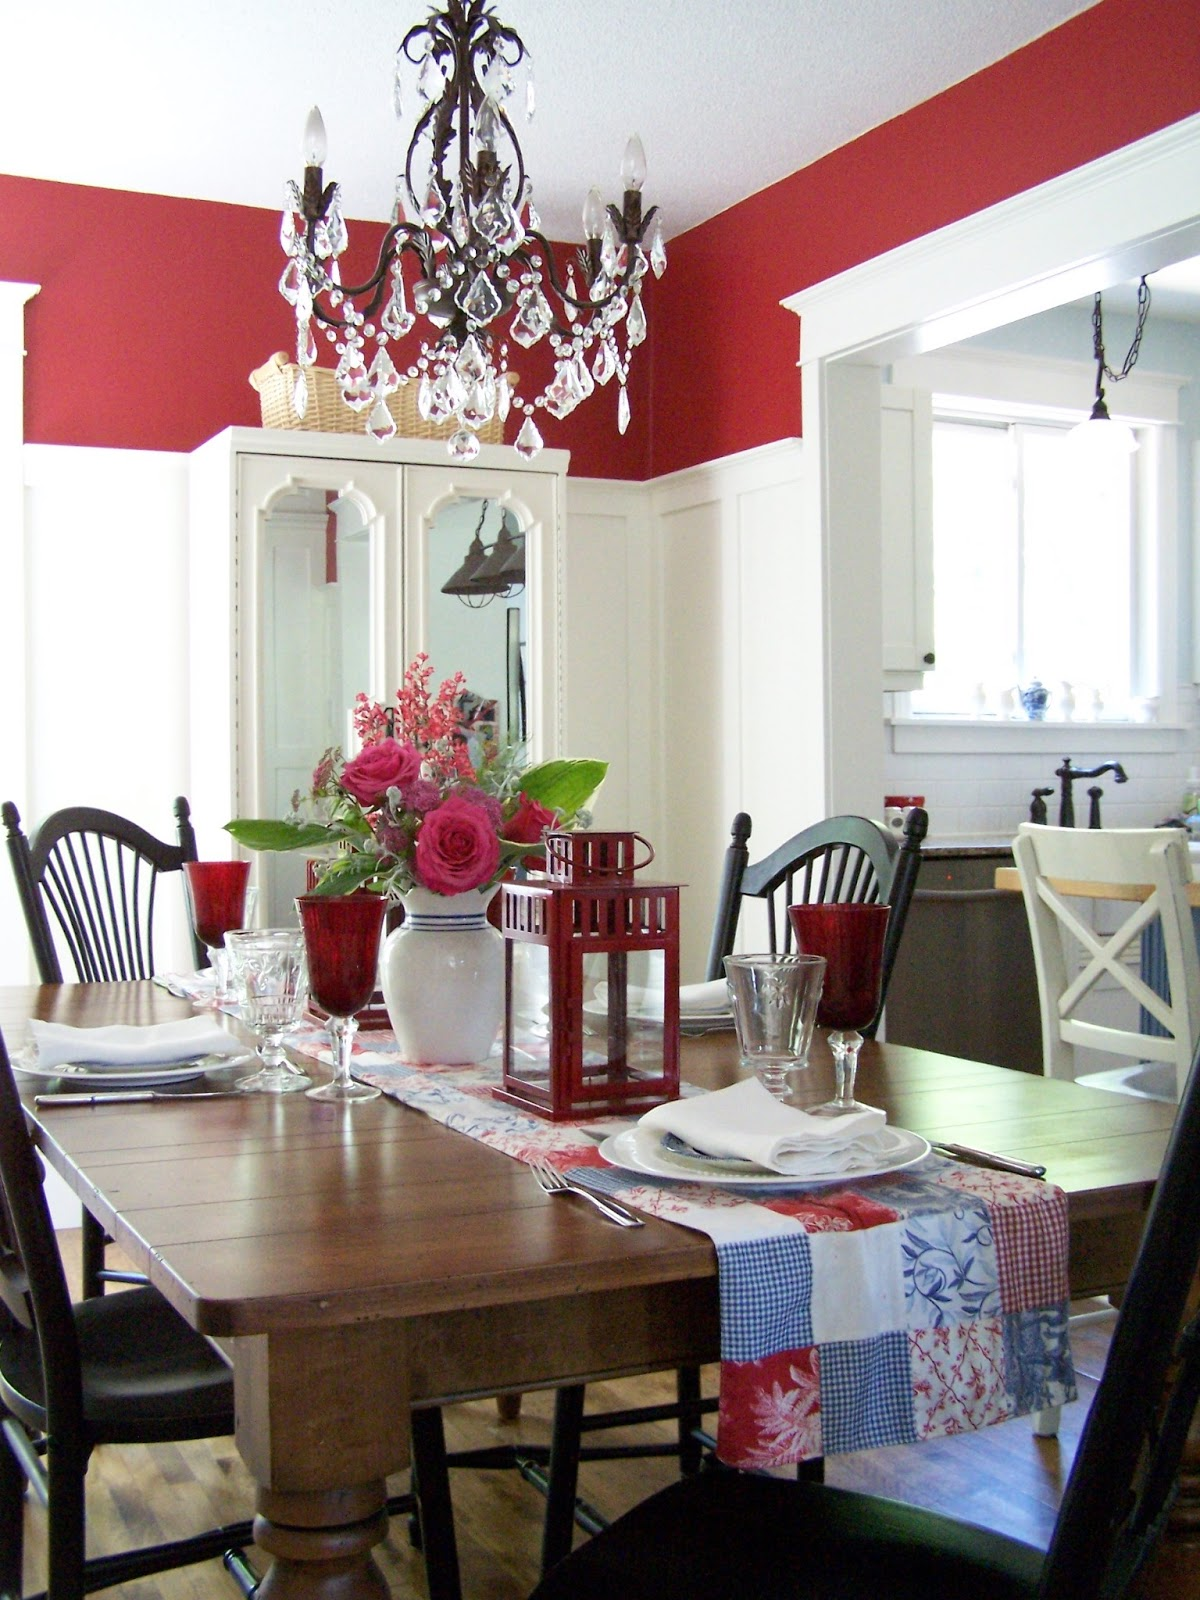 Delorme Designs: RED DINING ROOMS PART 2